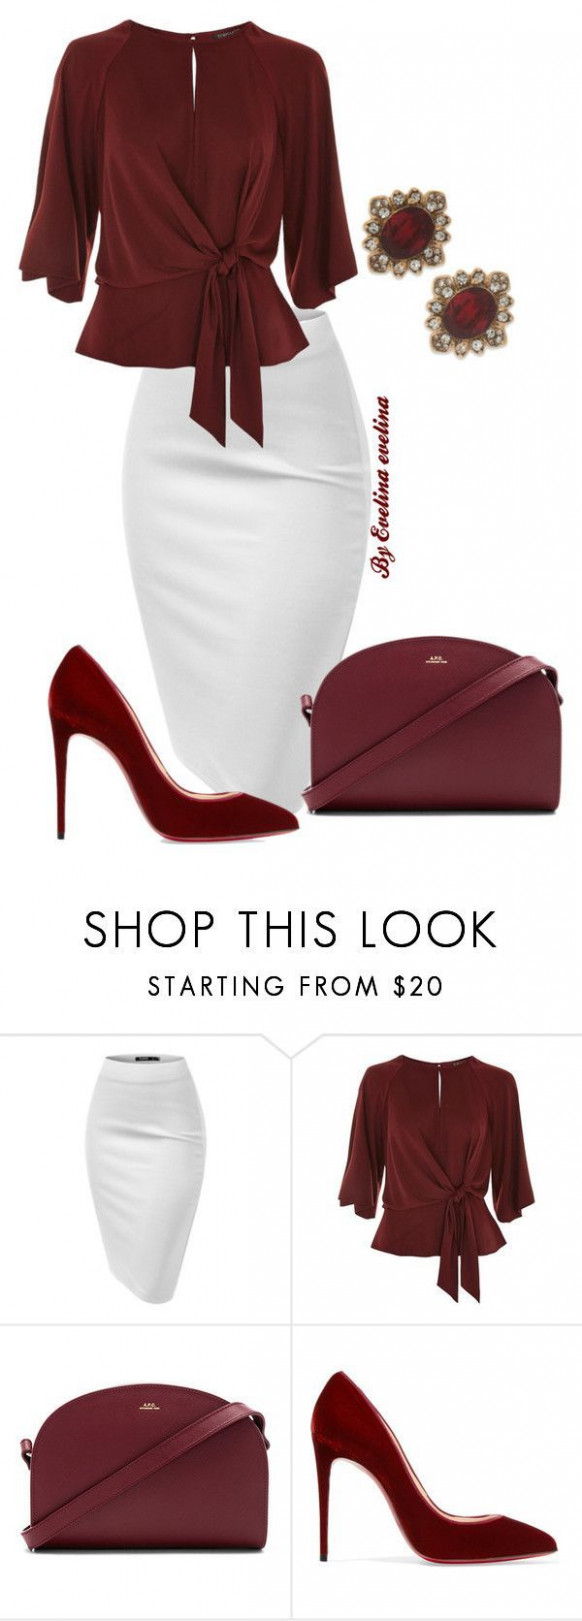 designer clothes, shoes & bags for women ssense kleidung online 77 kleidung